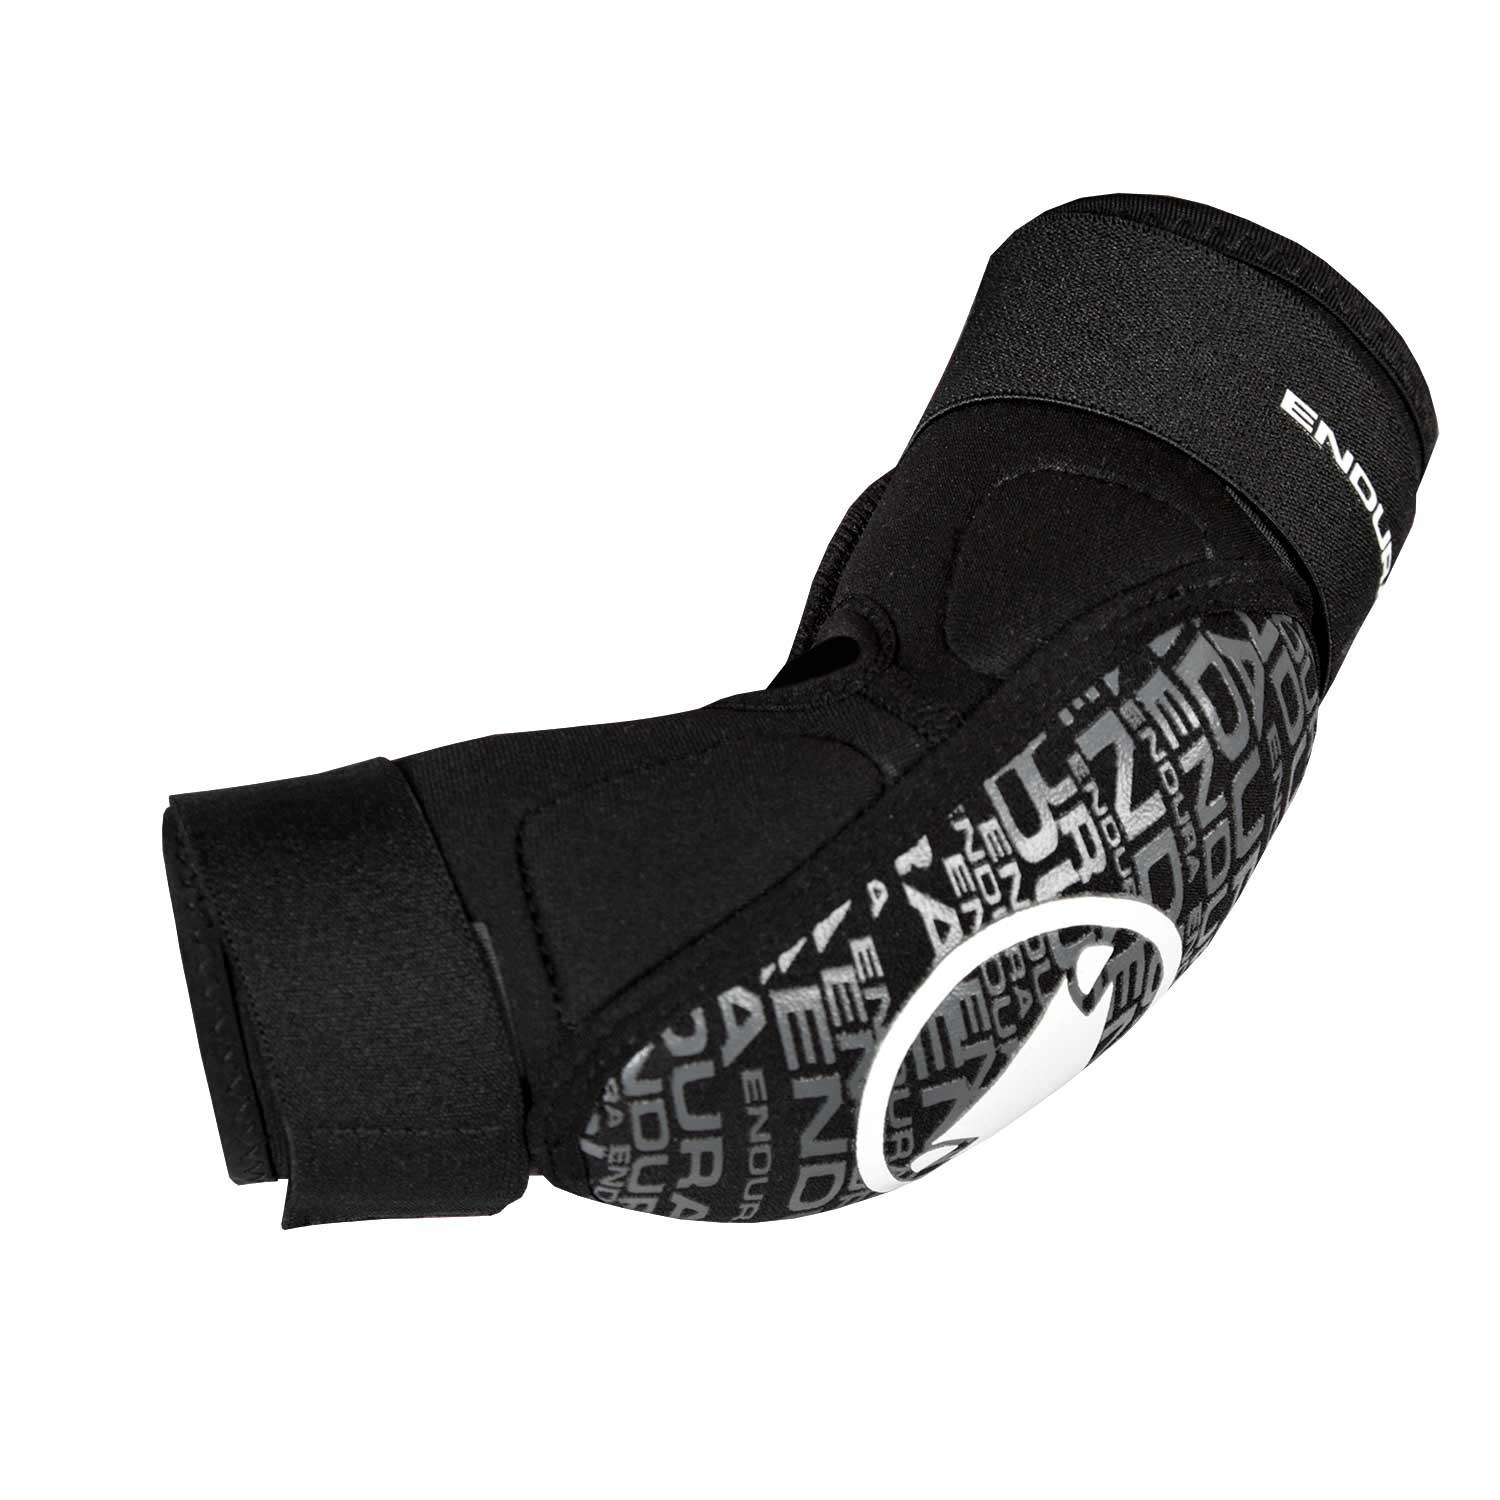 SingleTrack Youth Elbow Protector Black